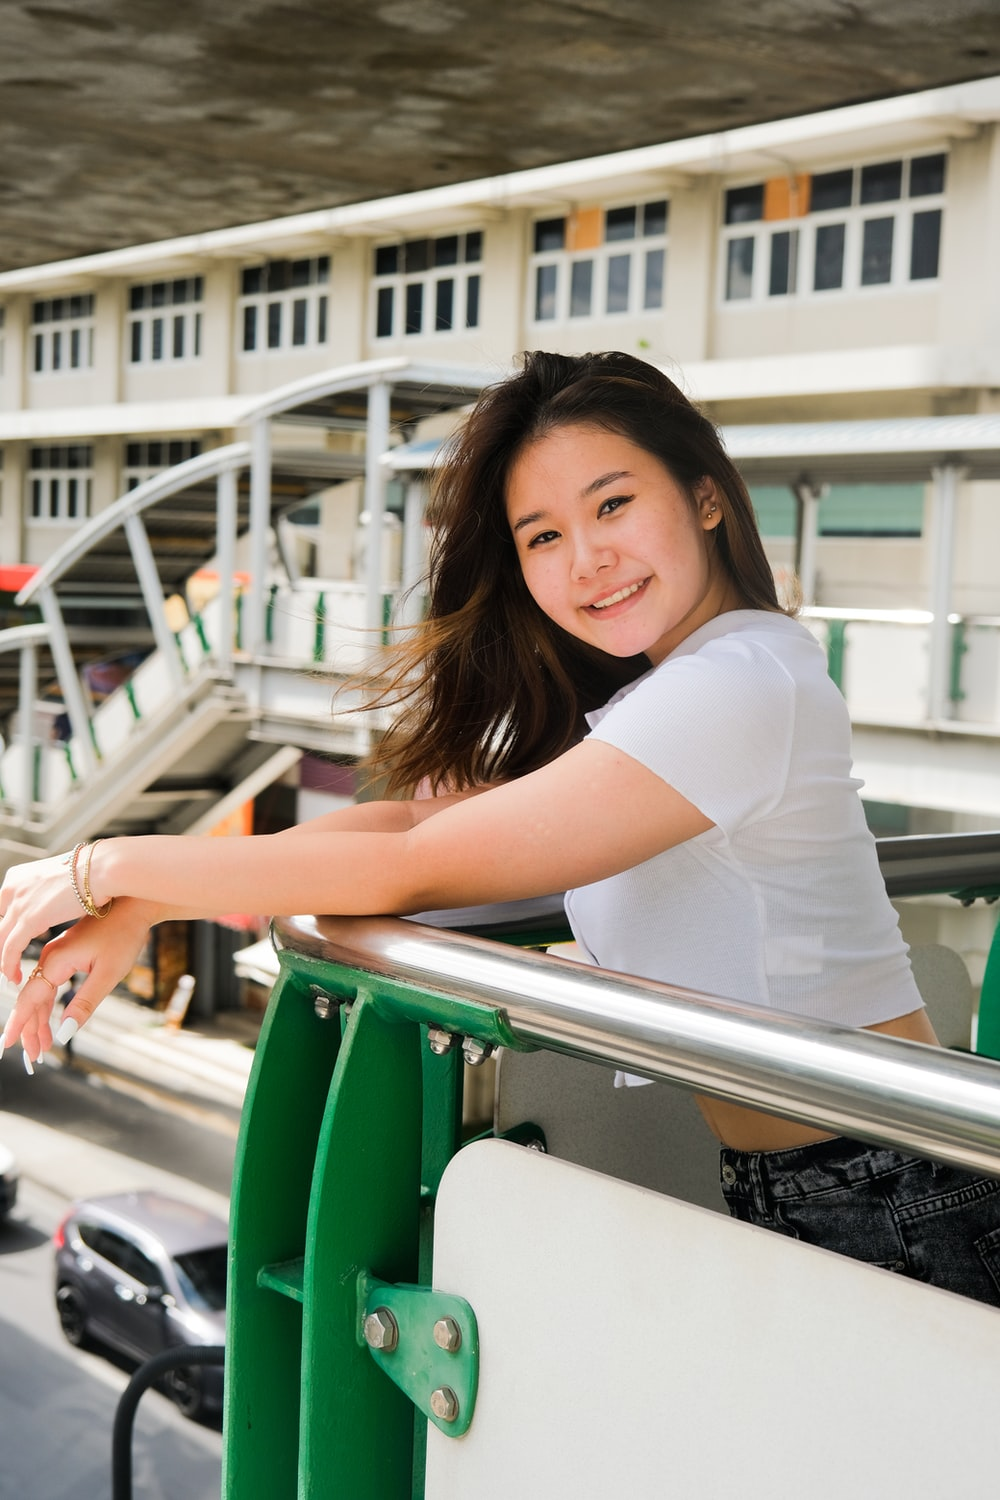 woman in white t-shirt leaning on green metal railings